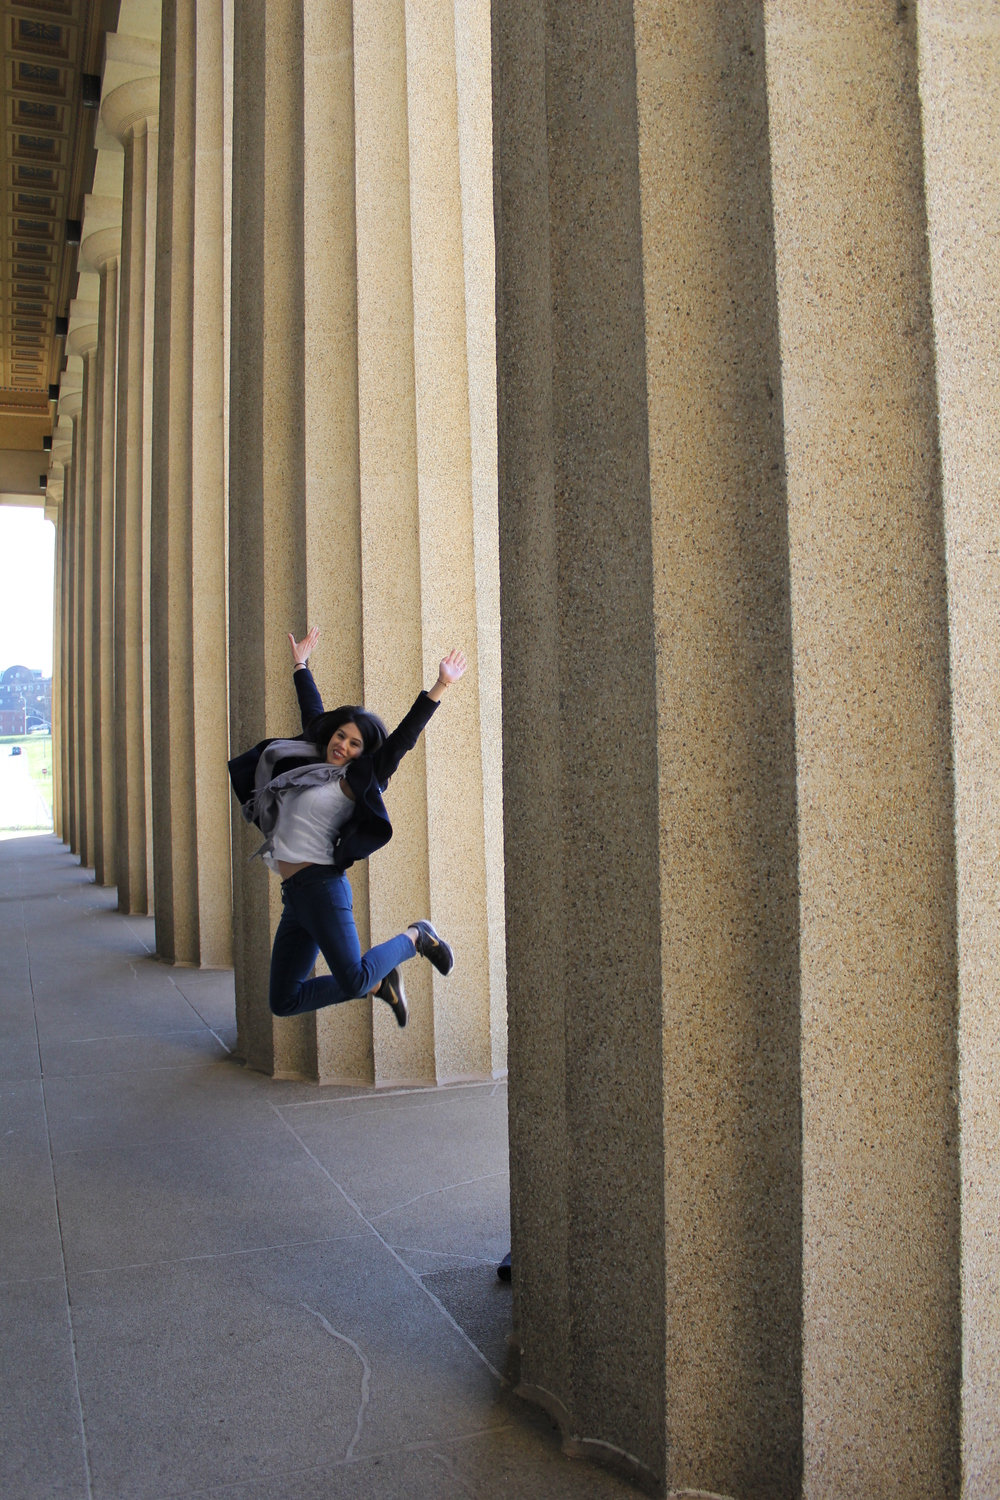 parthenon adventures, nashville, tn.